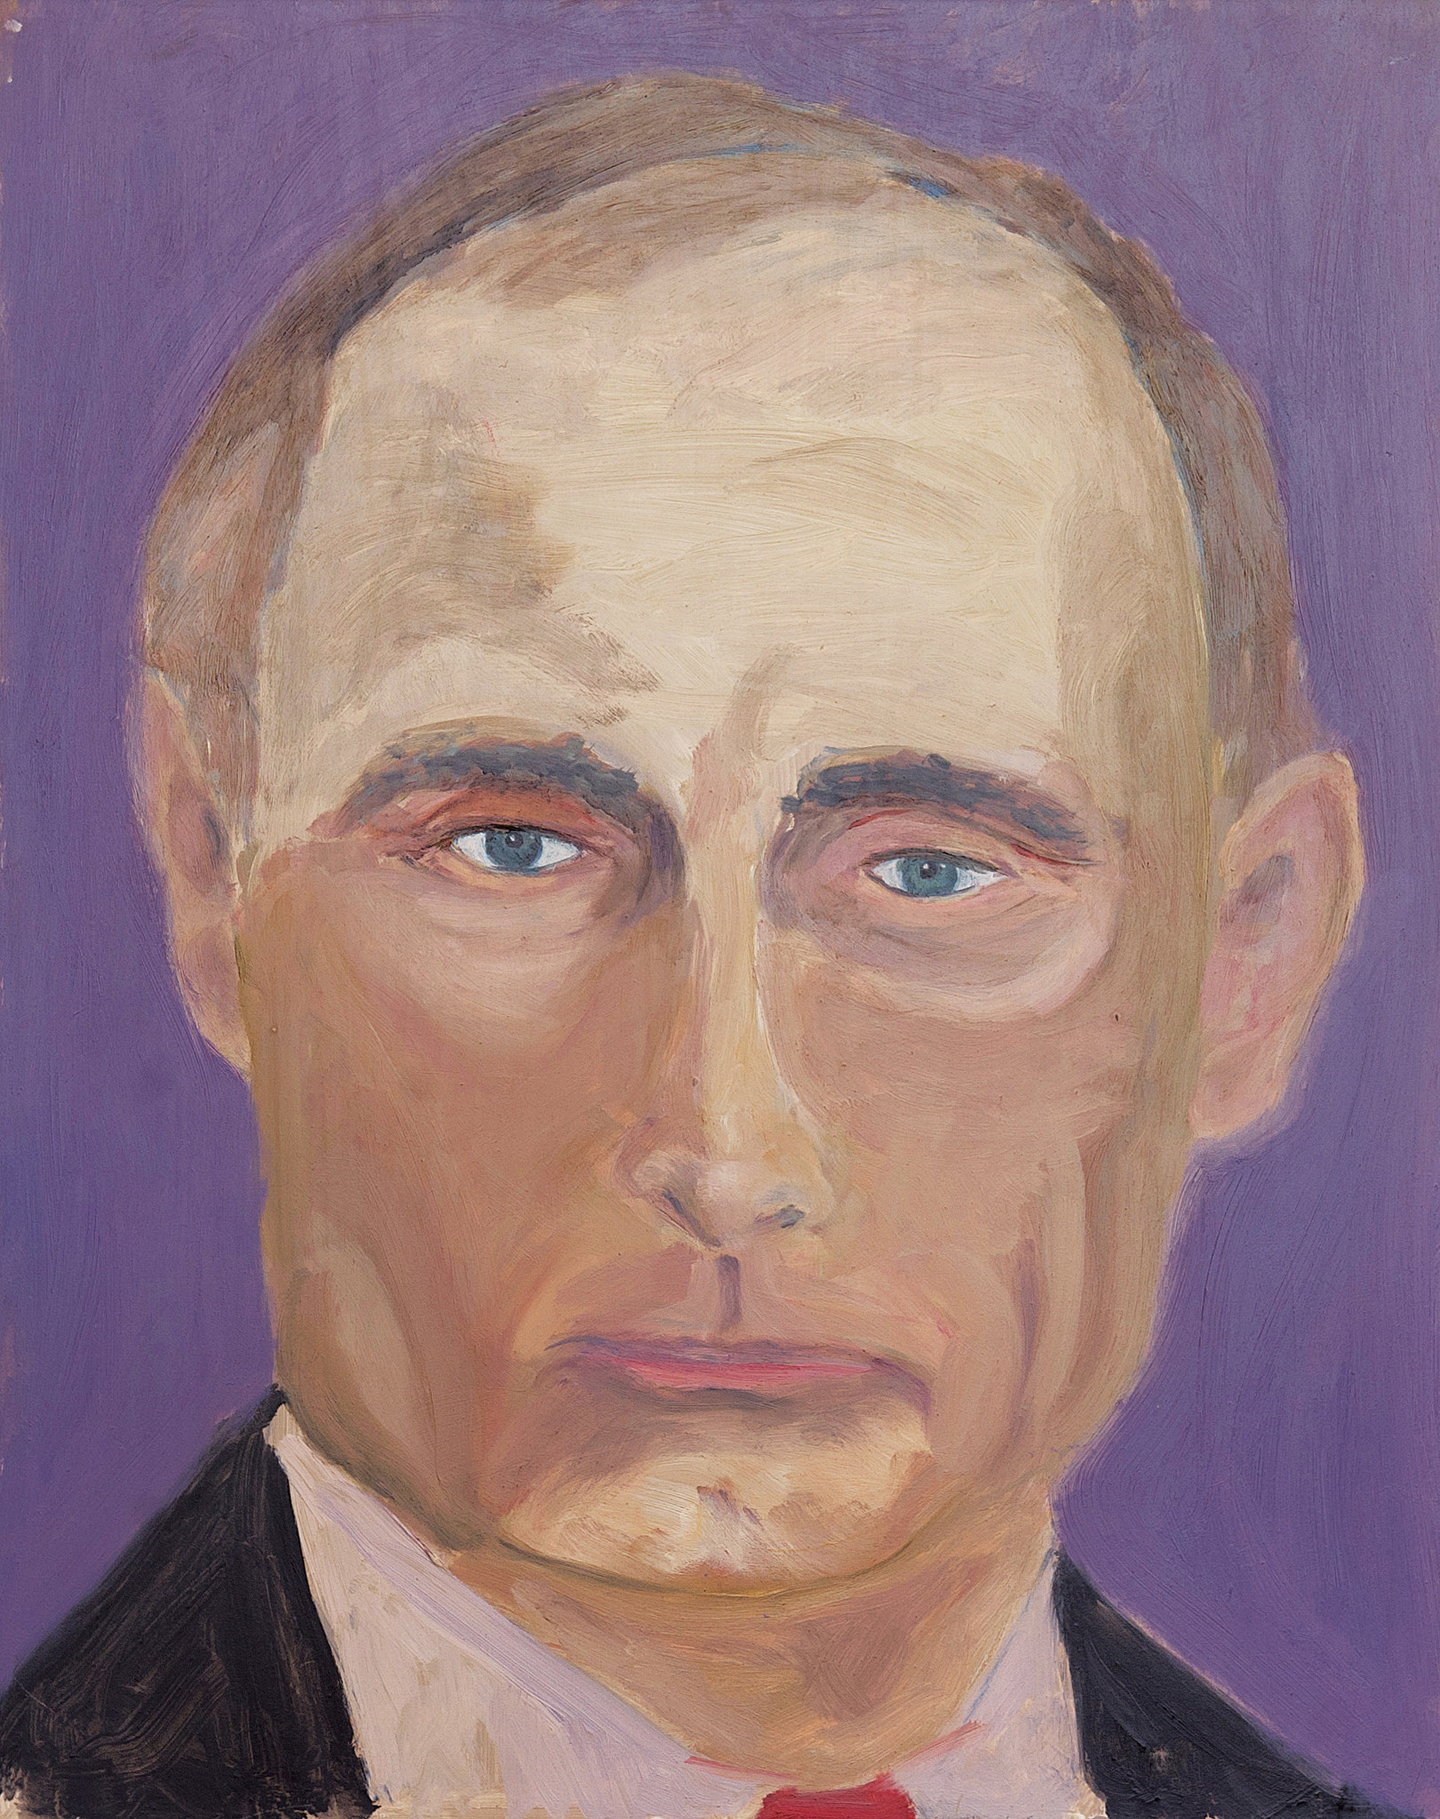 the art of leadership george w bush mousse magazine george w bush putin 2012 photo grant miller